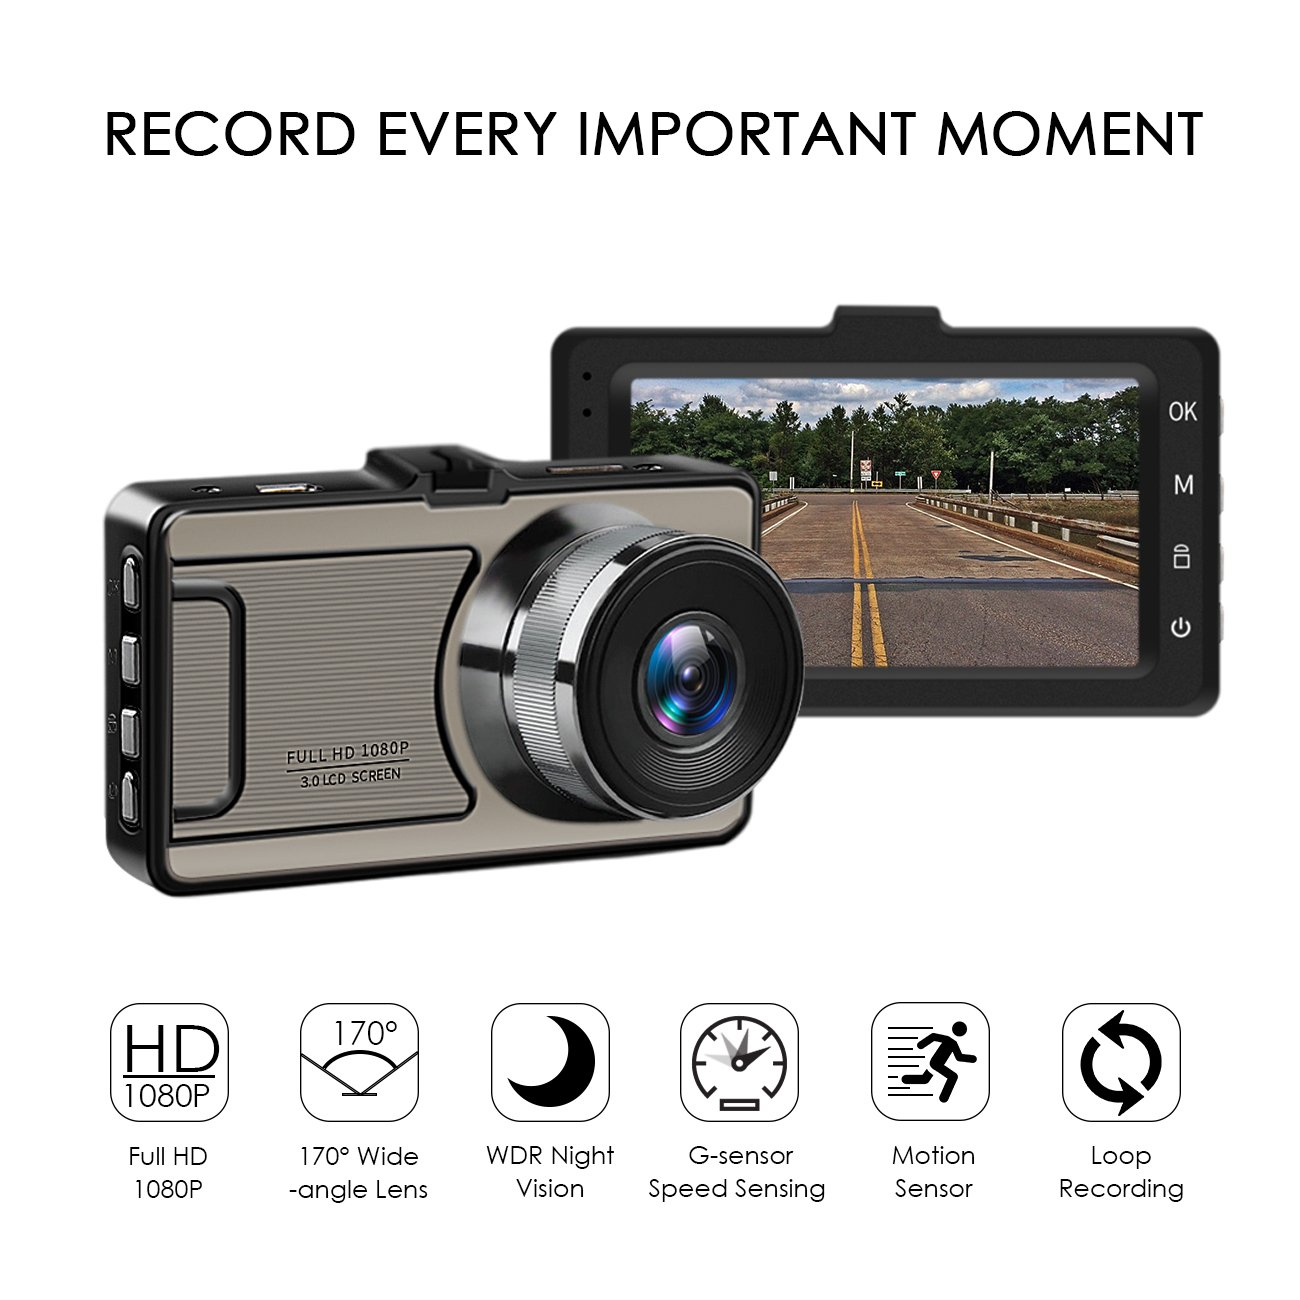 Favoto Dash Cam Full HD 1080P 12 Megapixel Camera 3'' Large LCD Screen 170° Wide Angle Lens Car Camera Recorder with G-Sensor WDR Night Vision Loop Recording Motion Sensor by Favoto (Image #2)